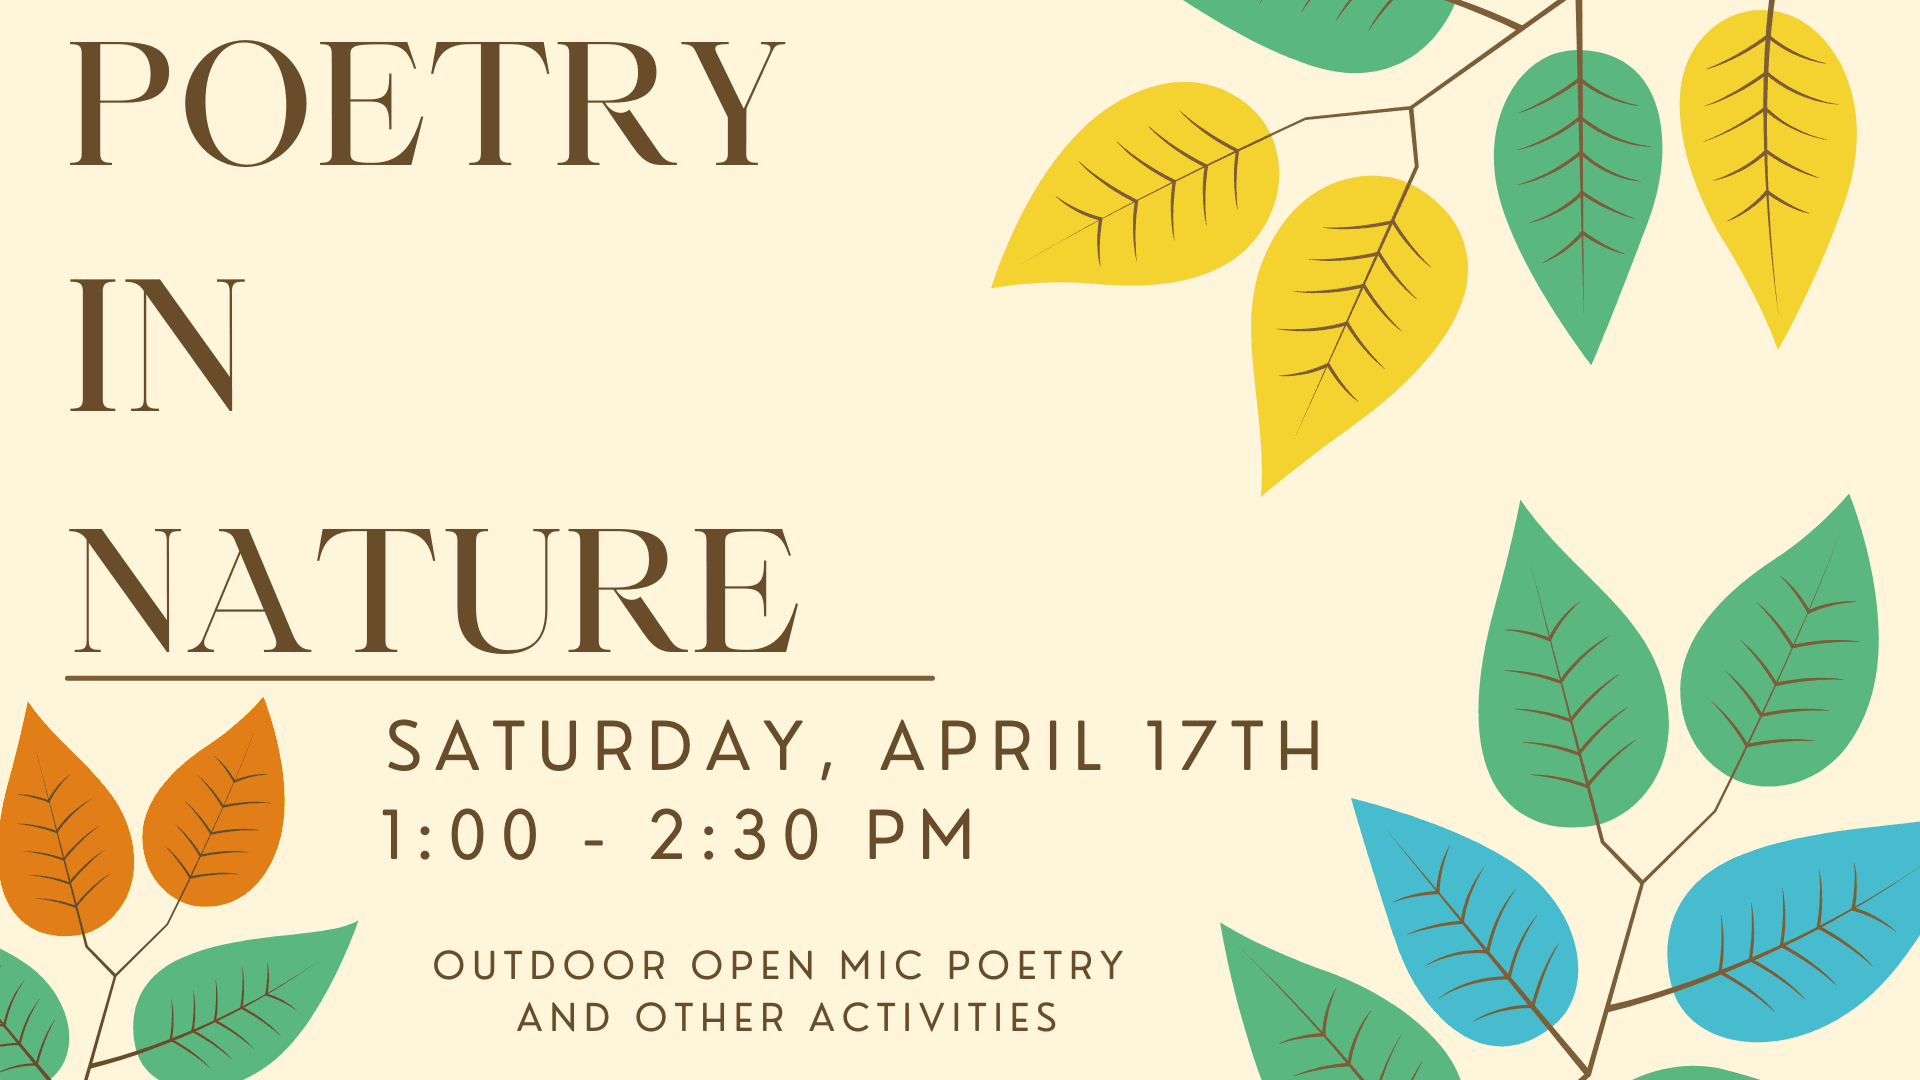 Poetry in Nature, Saturday April 17; 1:00 to 2:30PM; Outdoor open mic poetry